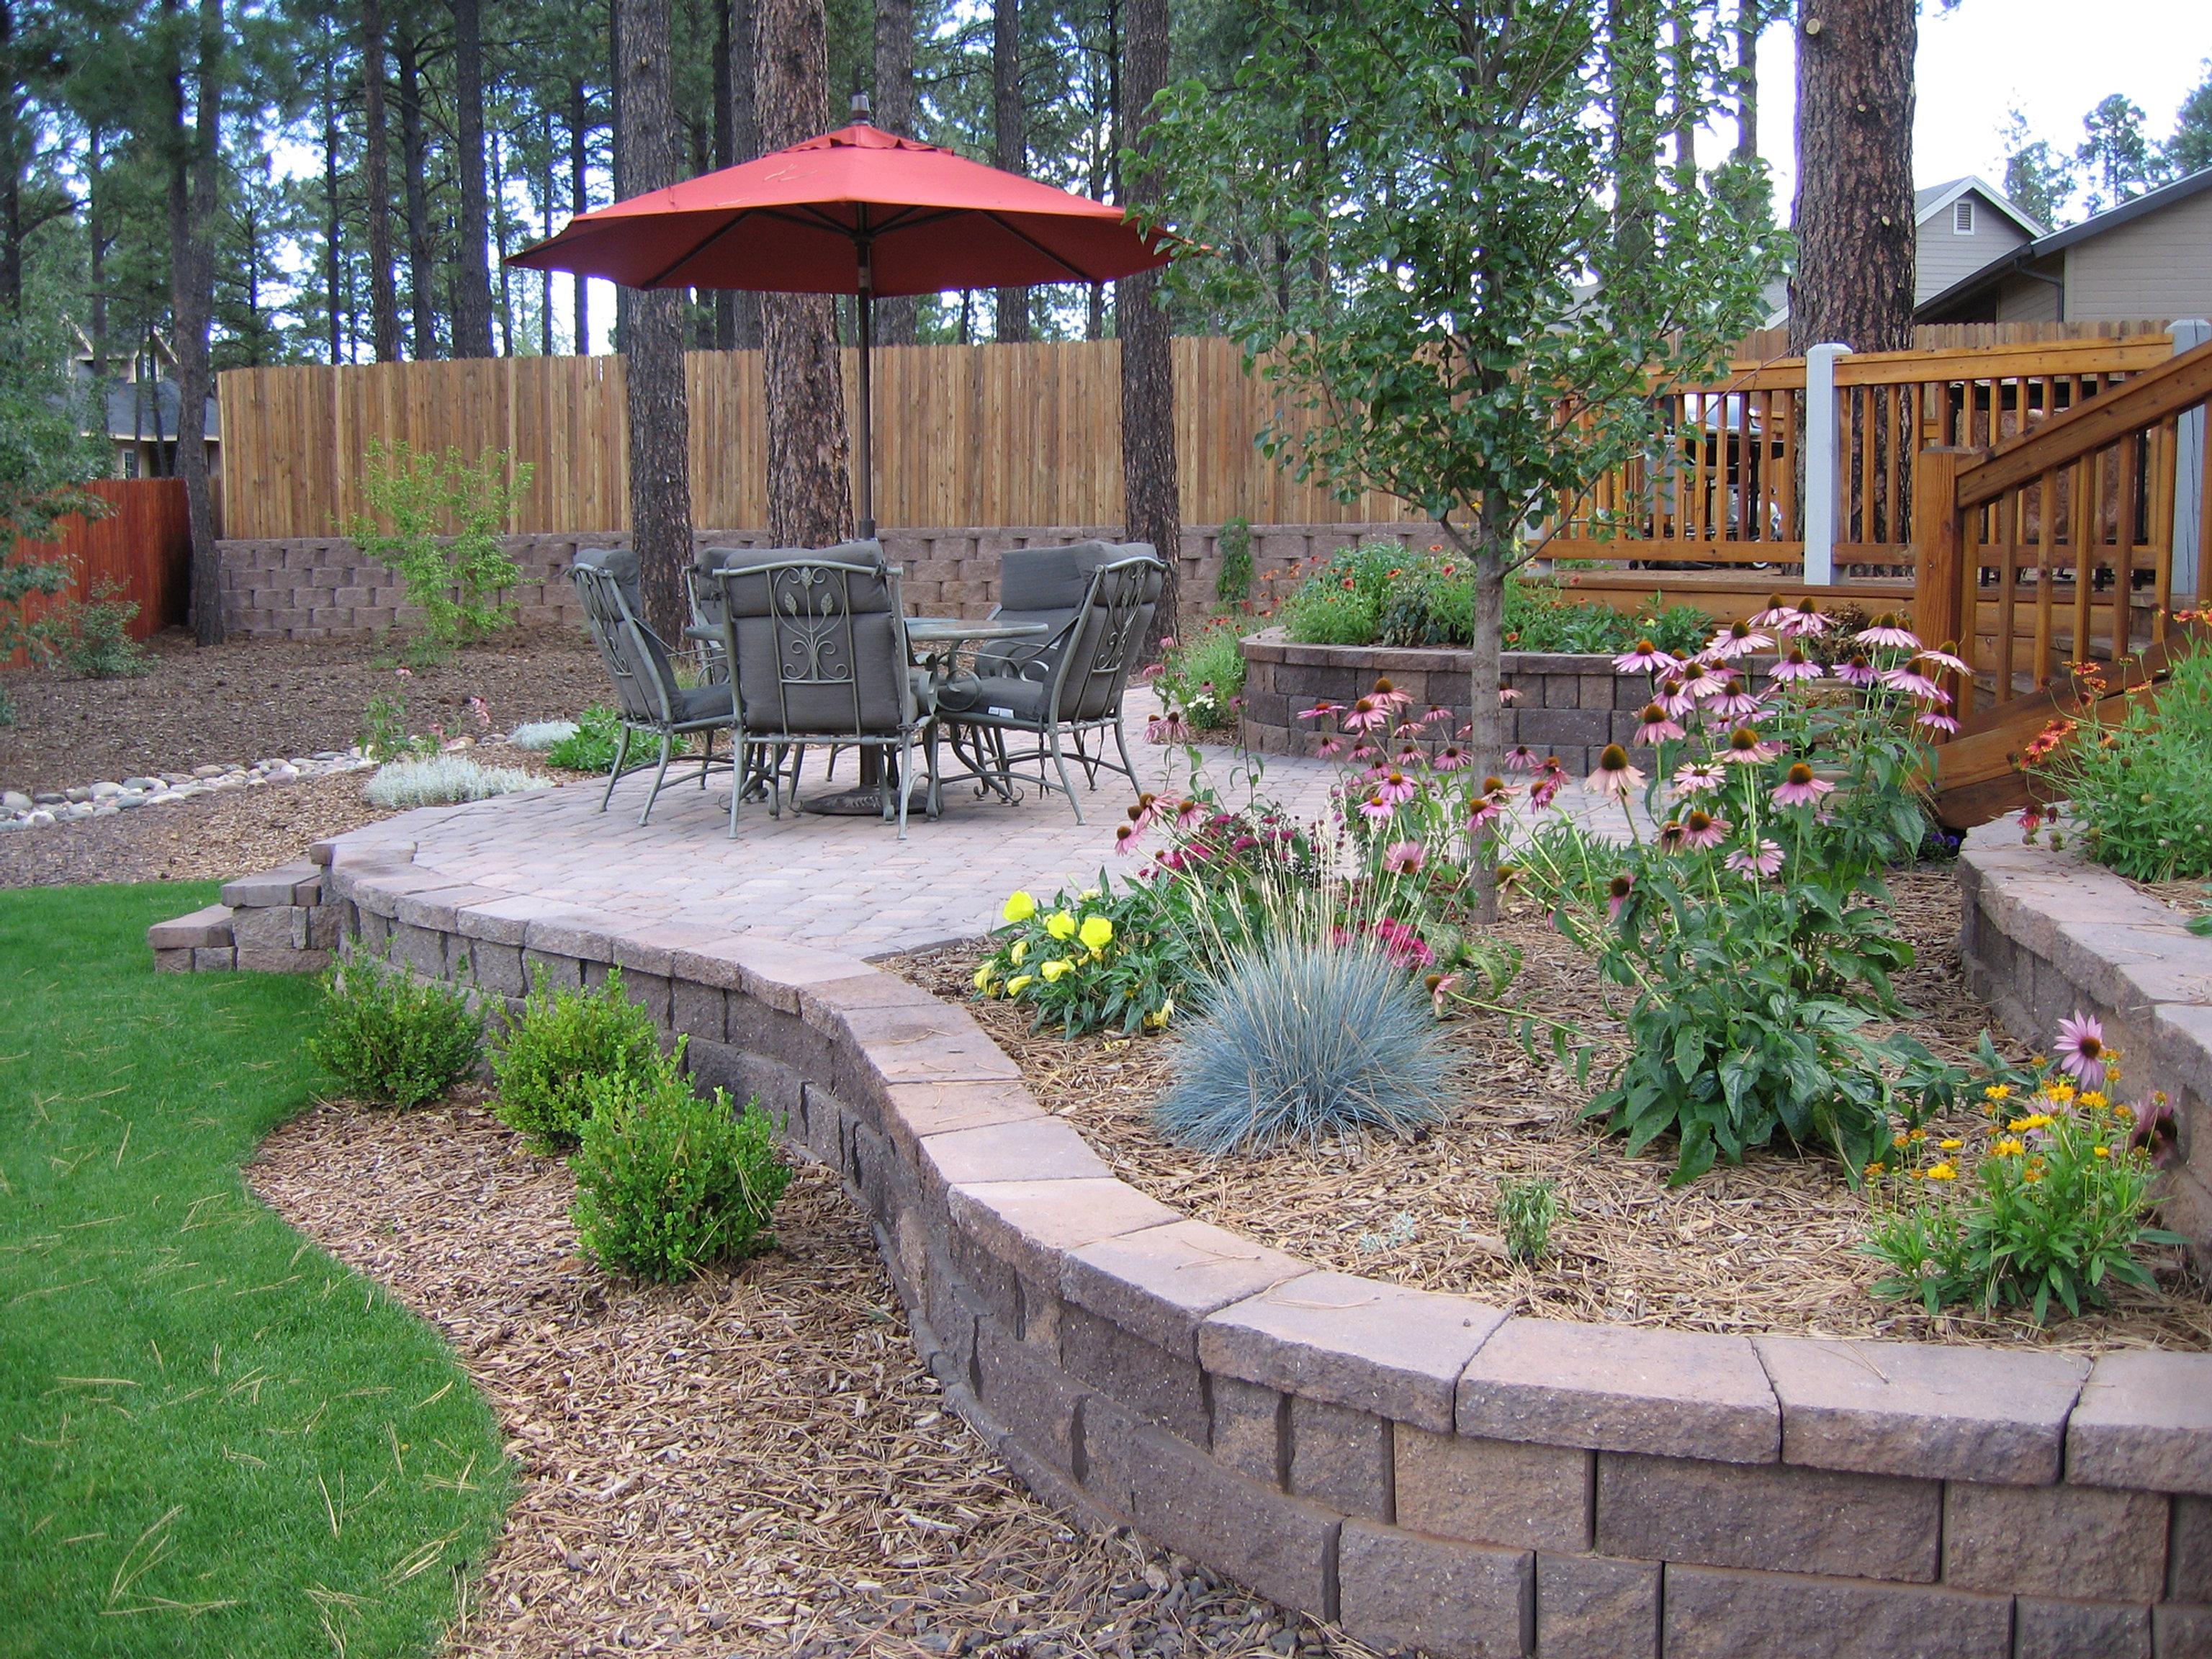 Designers U0026 Builders Of Exquisite Outdoor Living Spaces! Call Us Today |  Patio Planter.